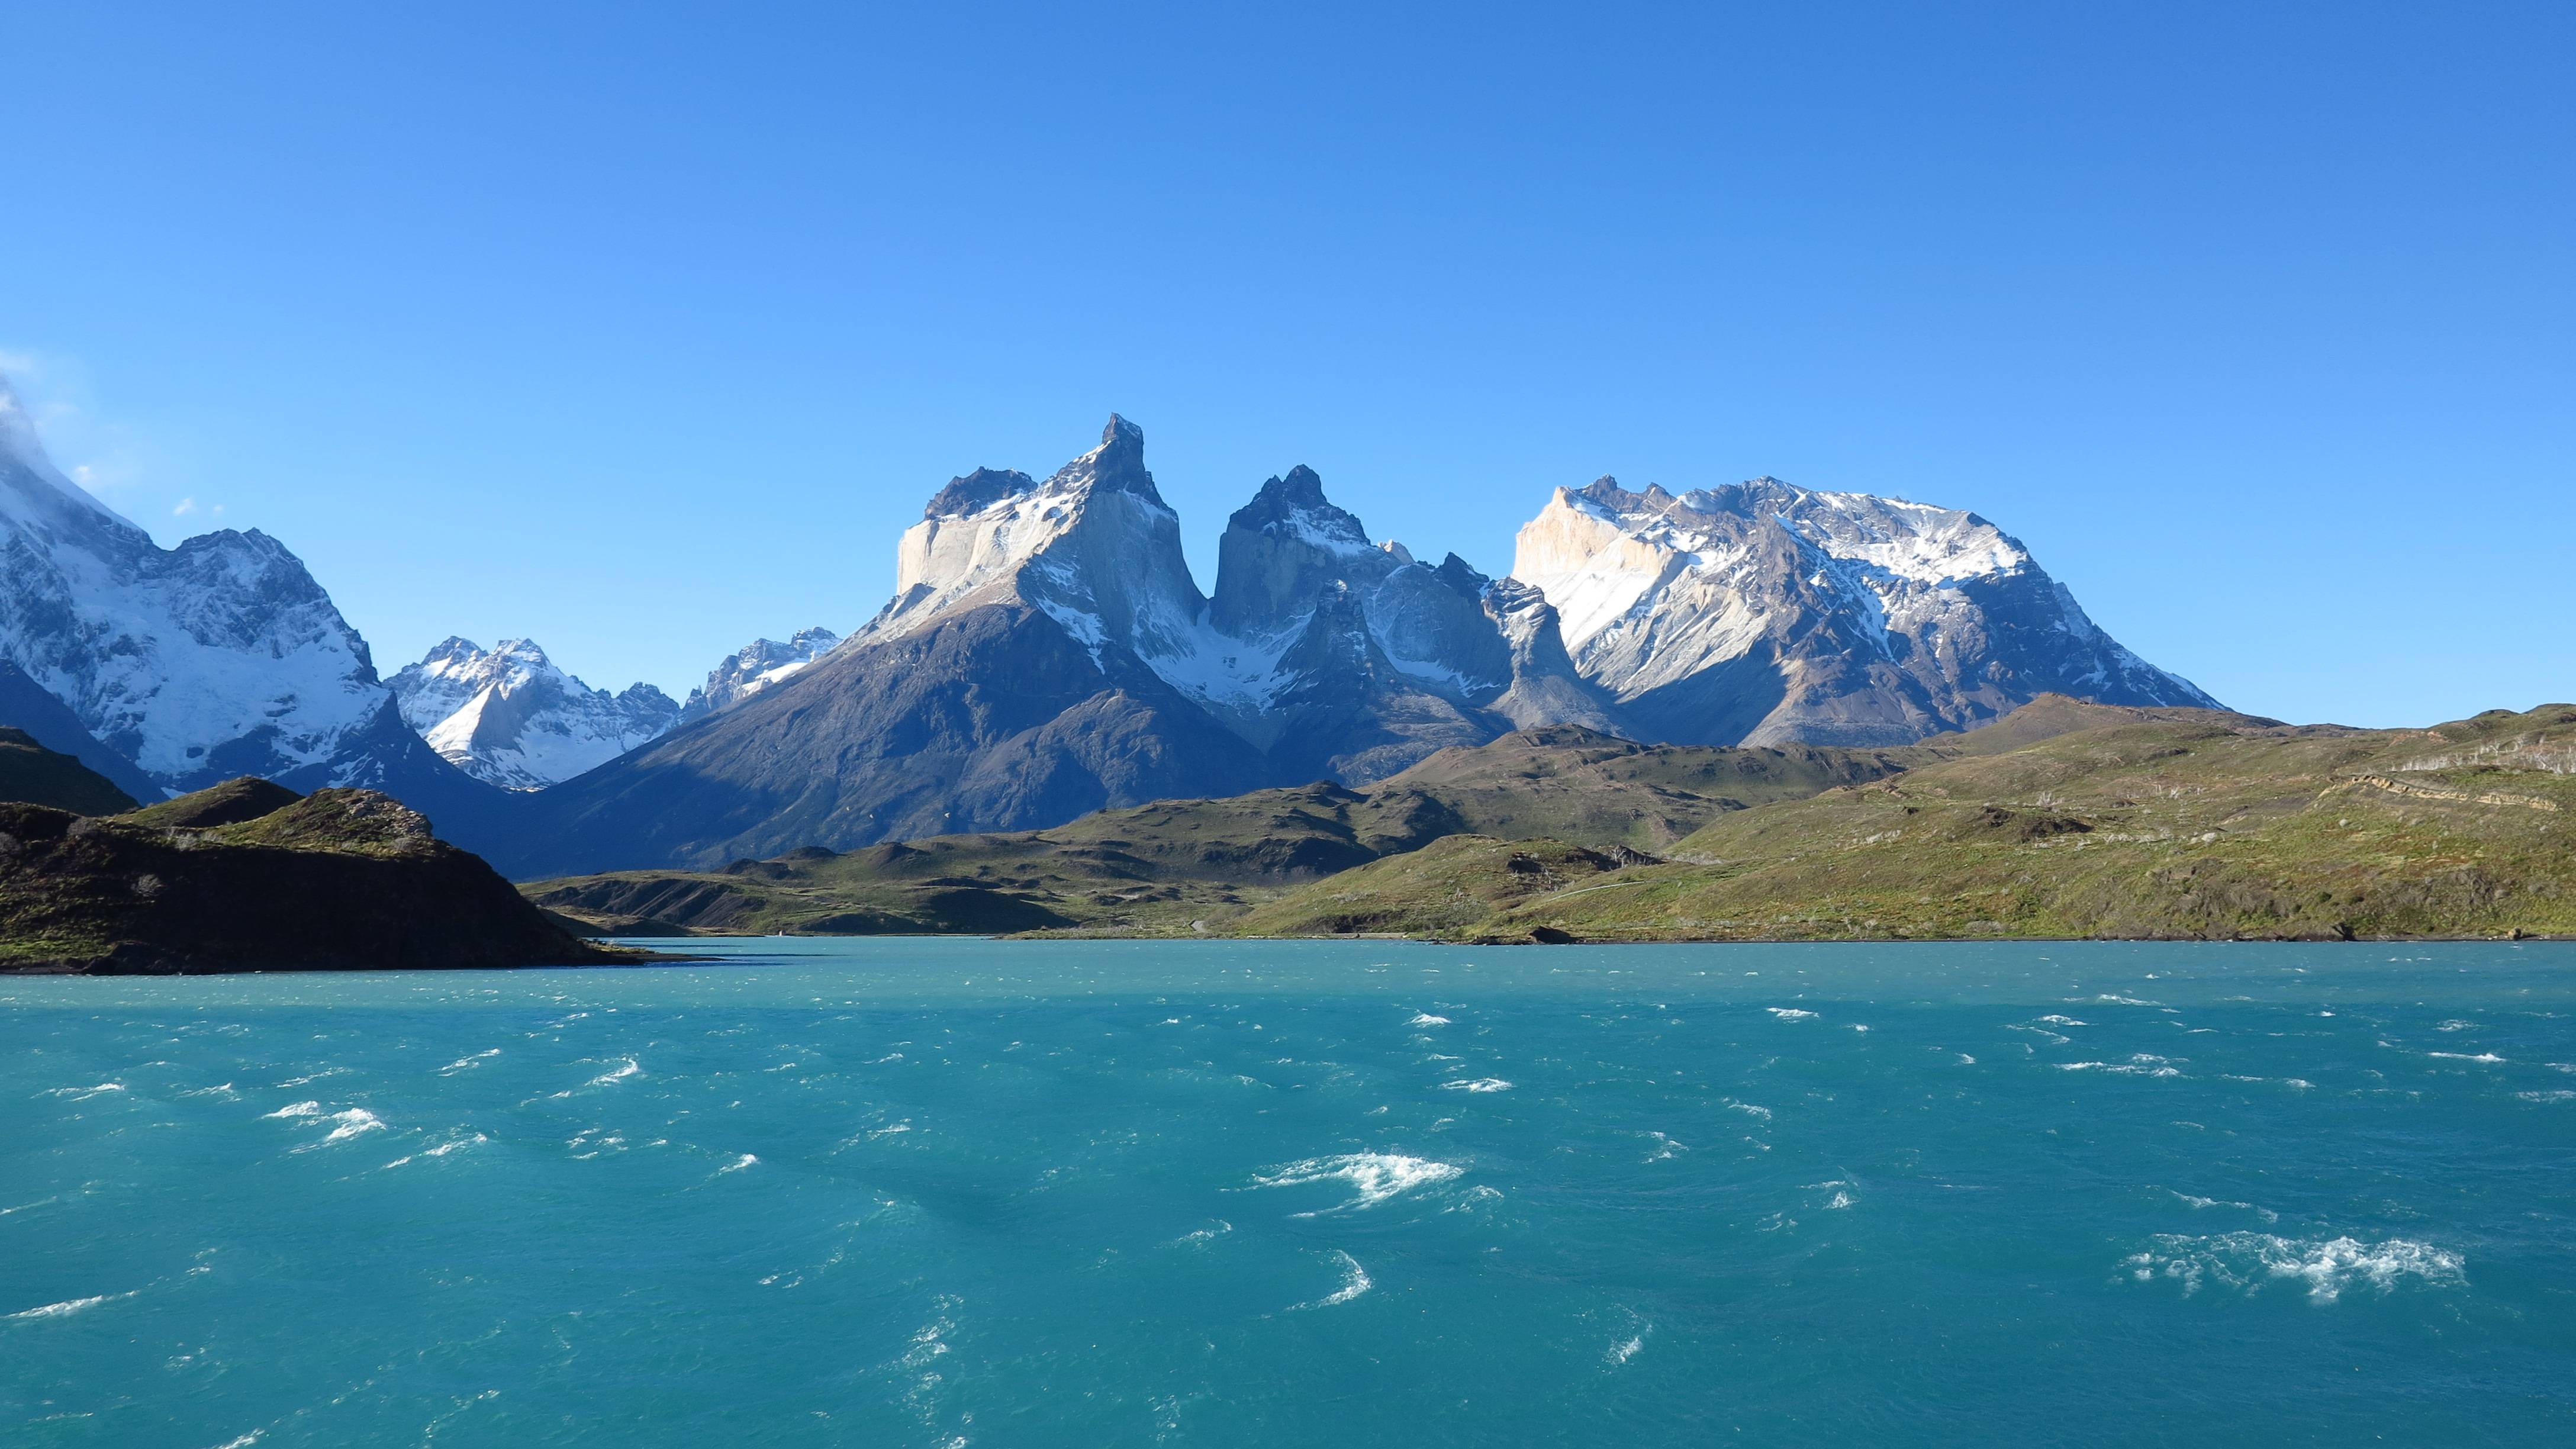 Photo 1: Torres del Paine National Park - The greatest !